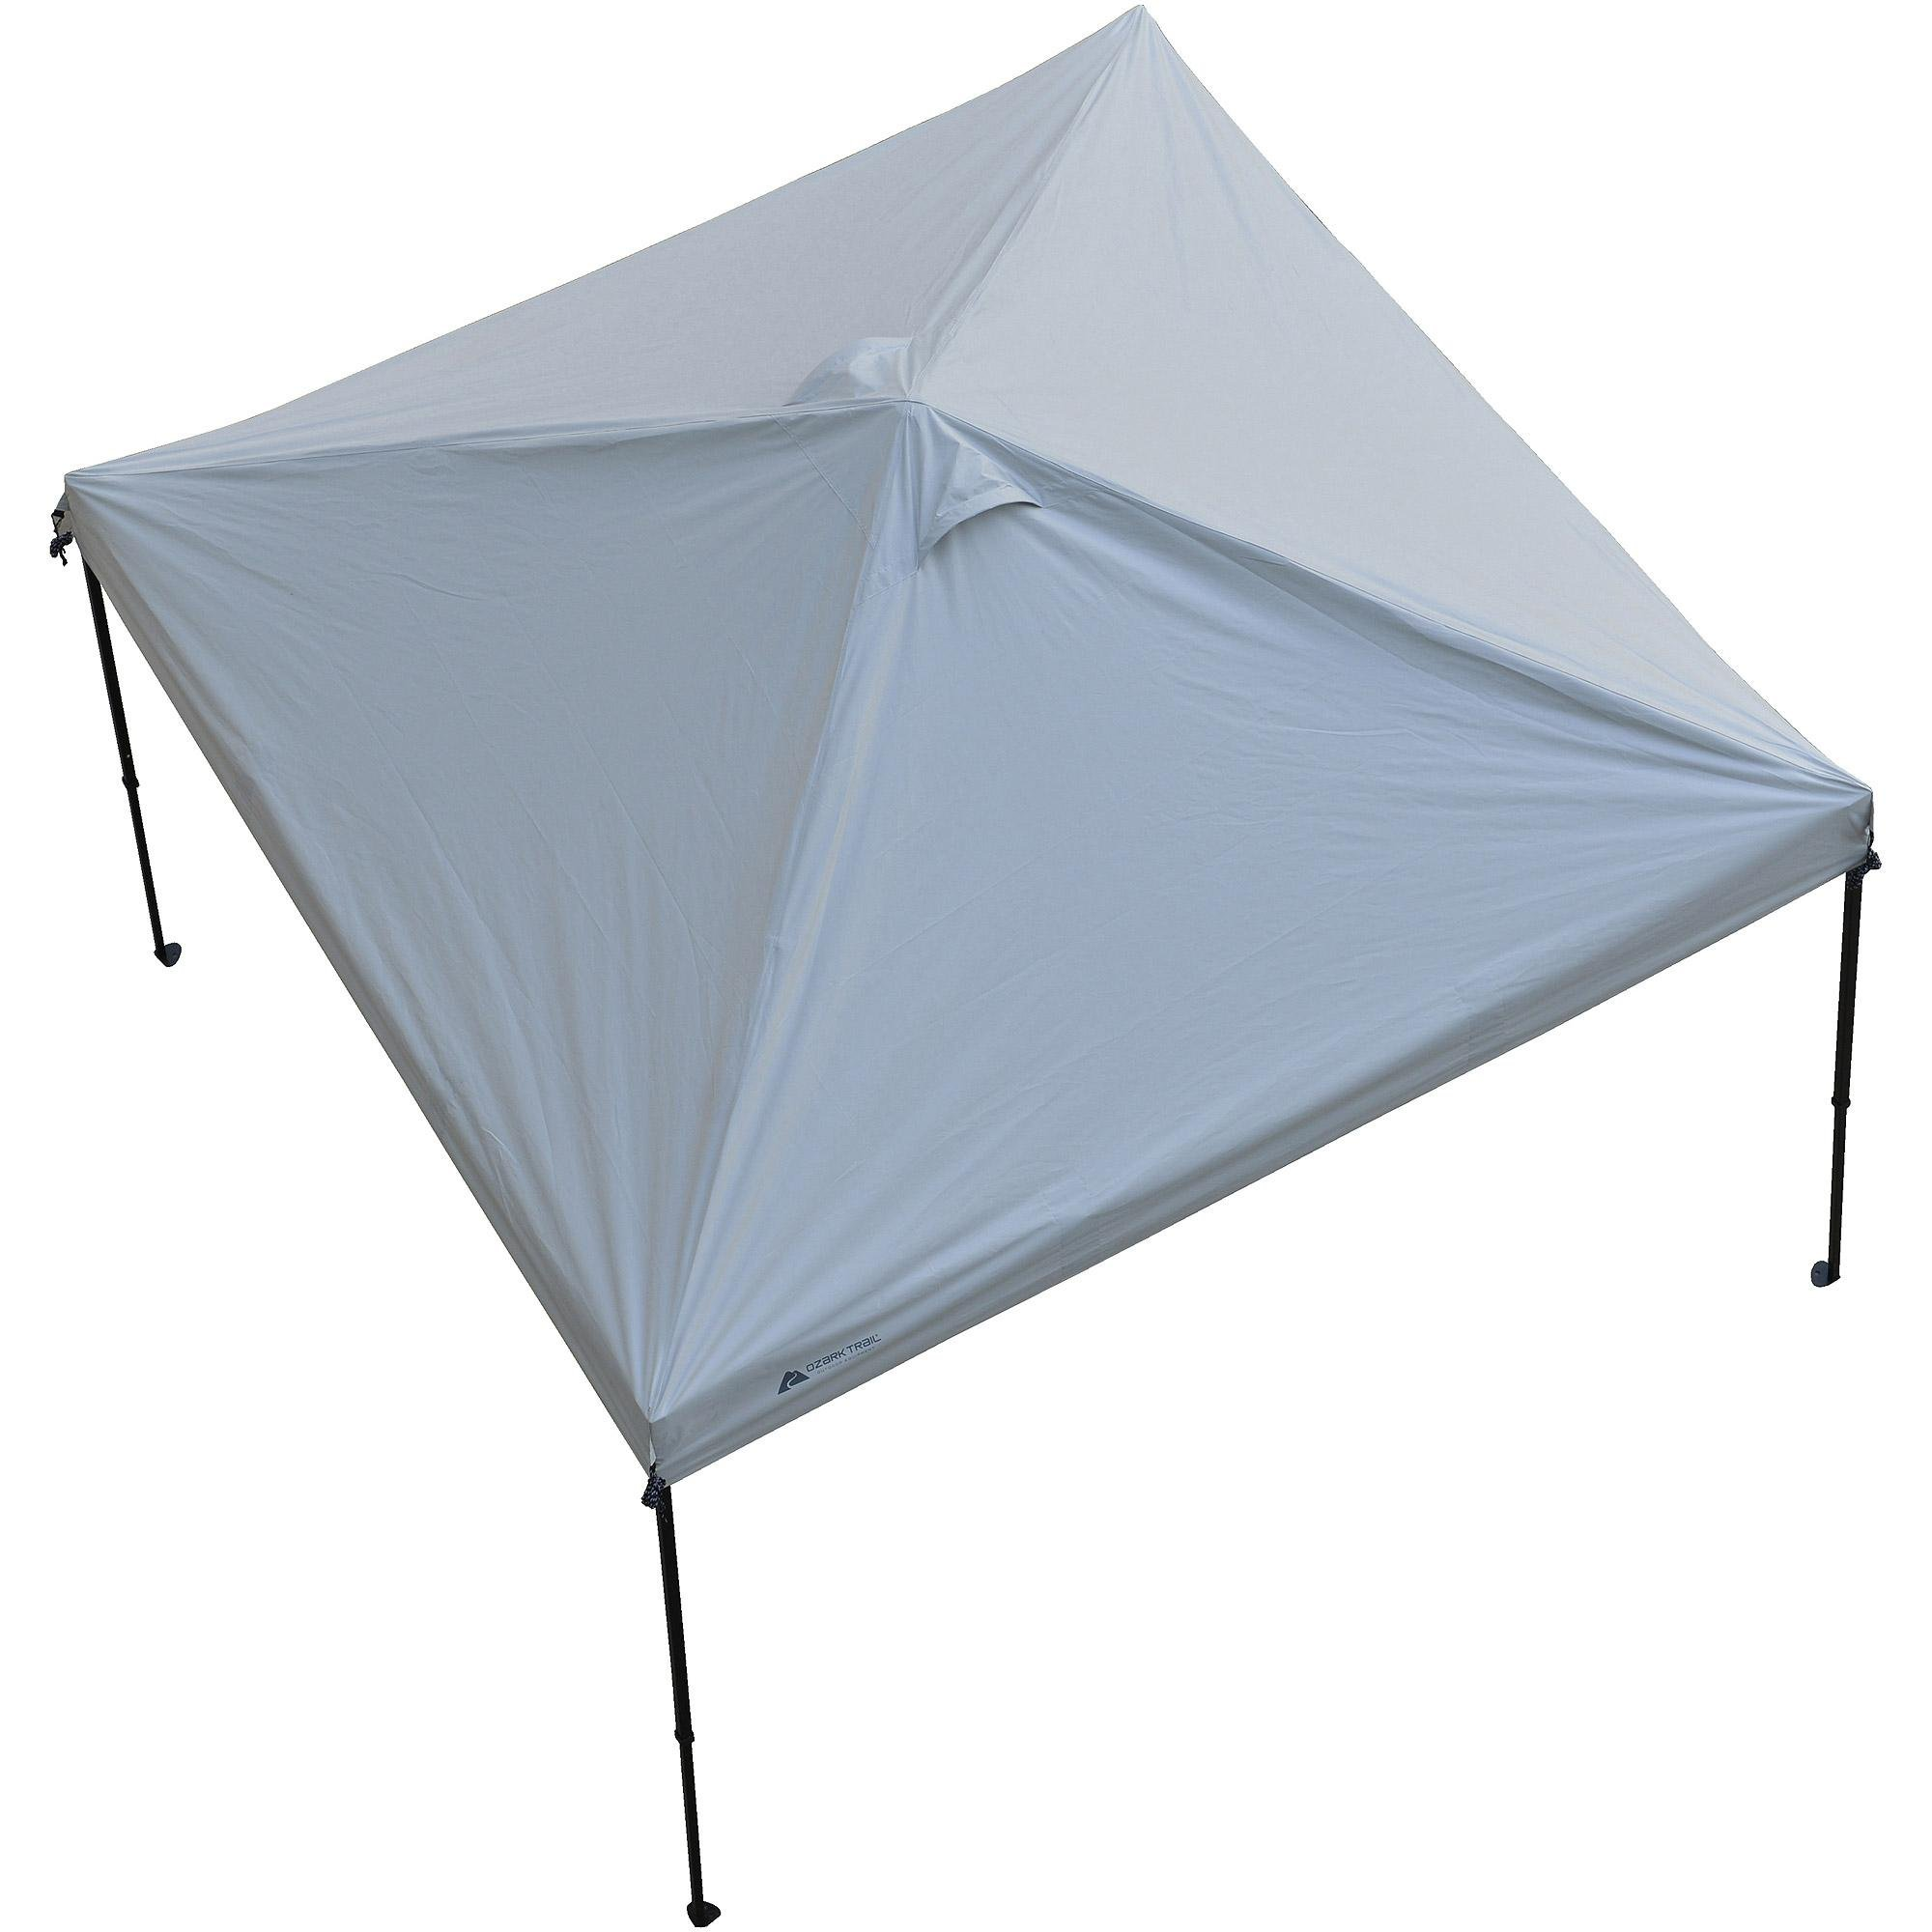 Ozark Trail 10ft X 10ft Gazebo Top Replacement Top Only